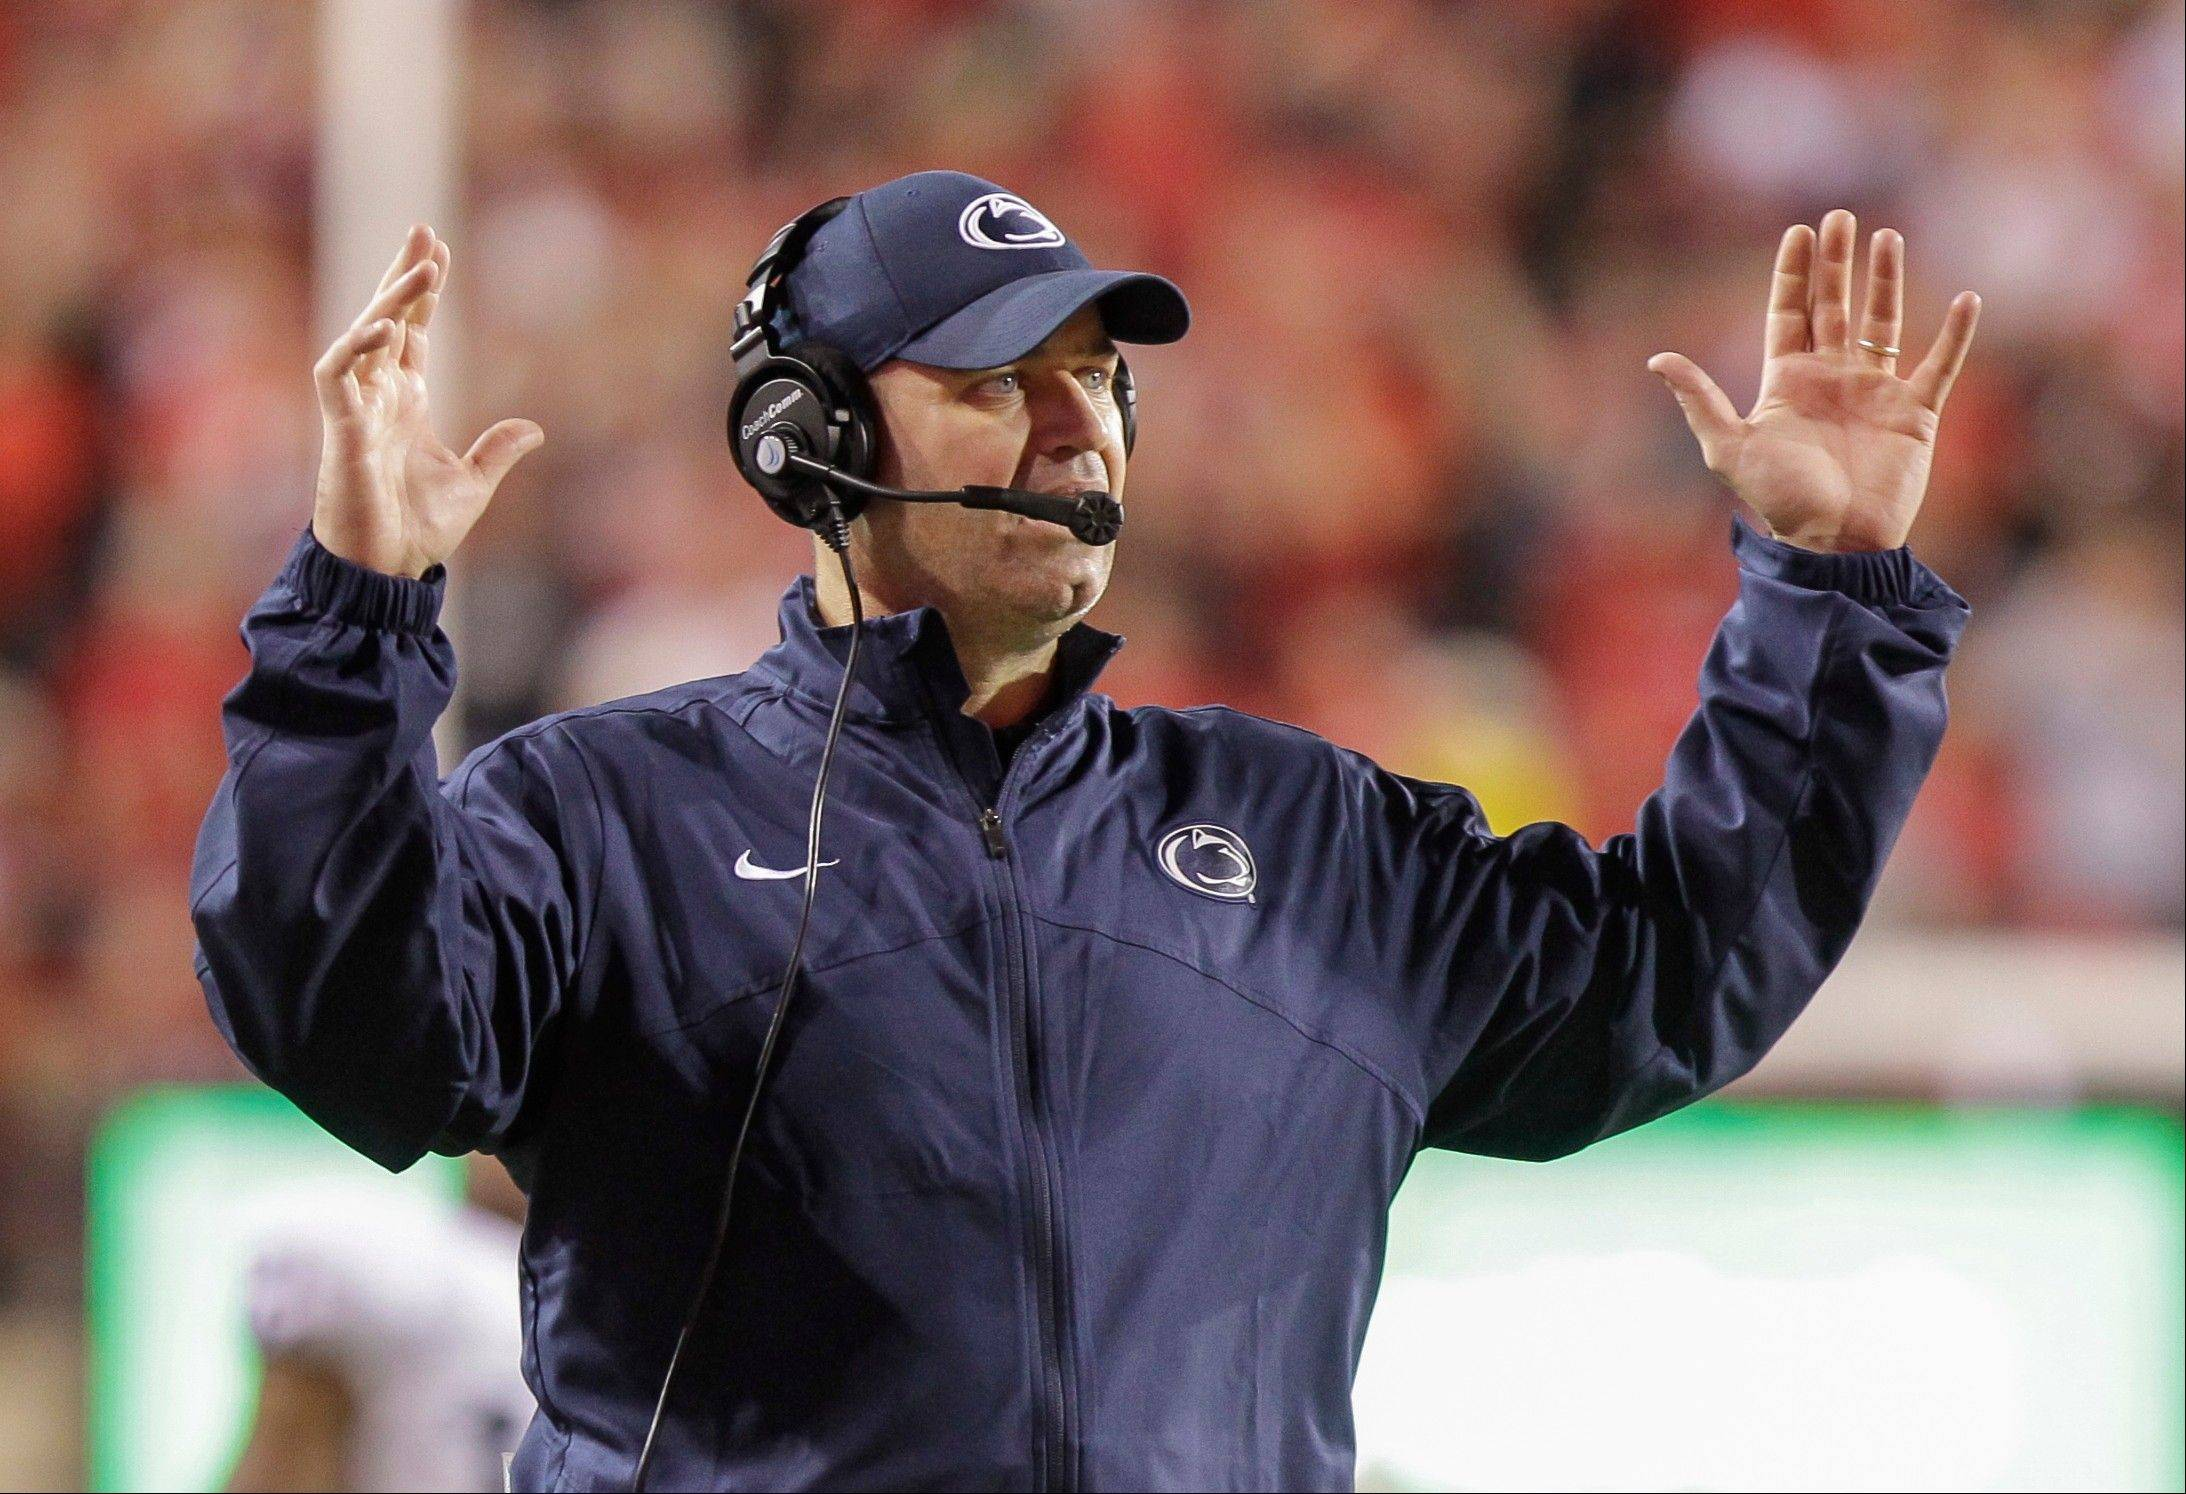 Penn State head coach Bill O'Brien drew interest from NFL teams including the Eagles and Browns following the 2012 season in which he electrified Penn State's offense with schemes resembling the high-scoring attack of the Patriots.